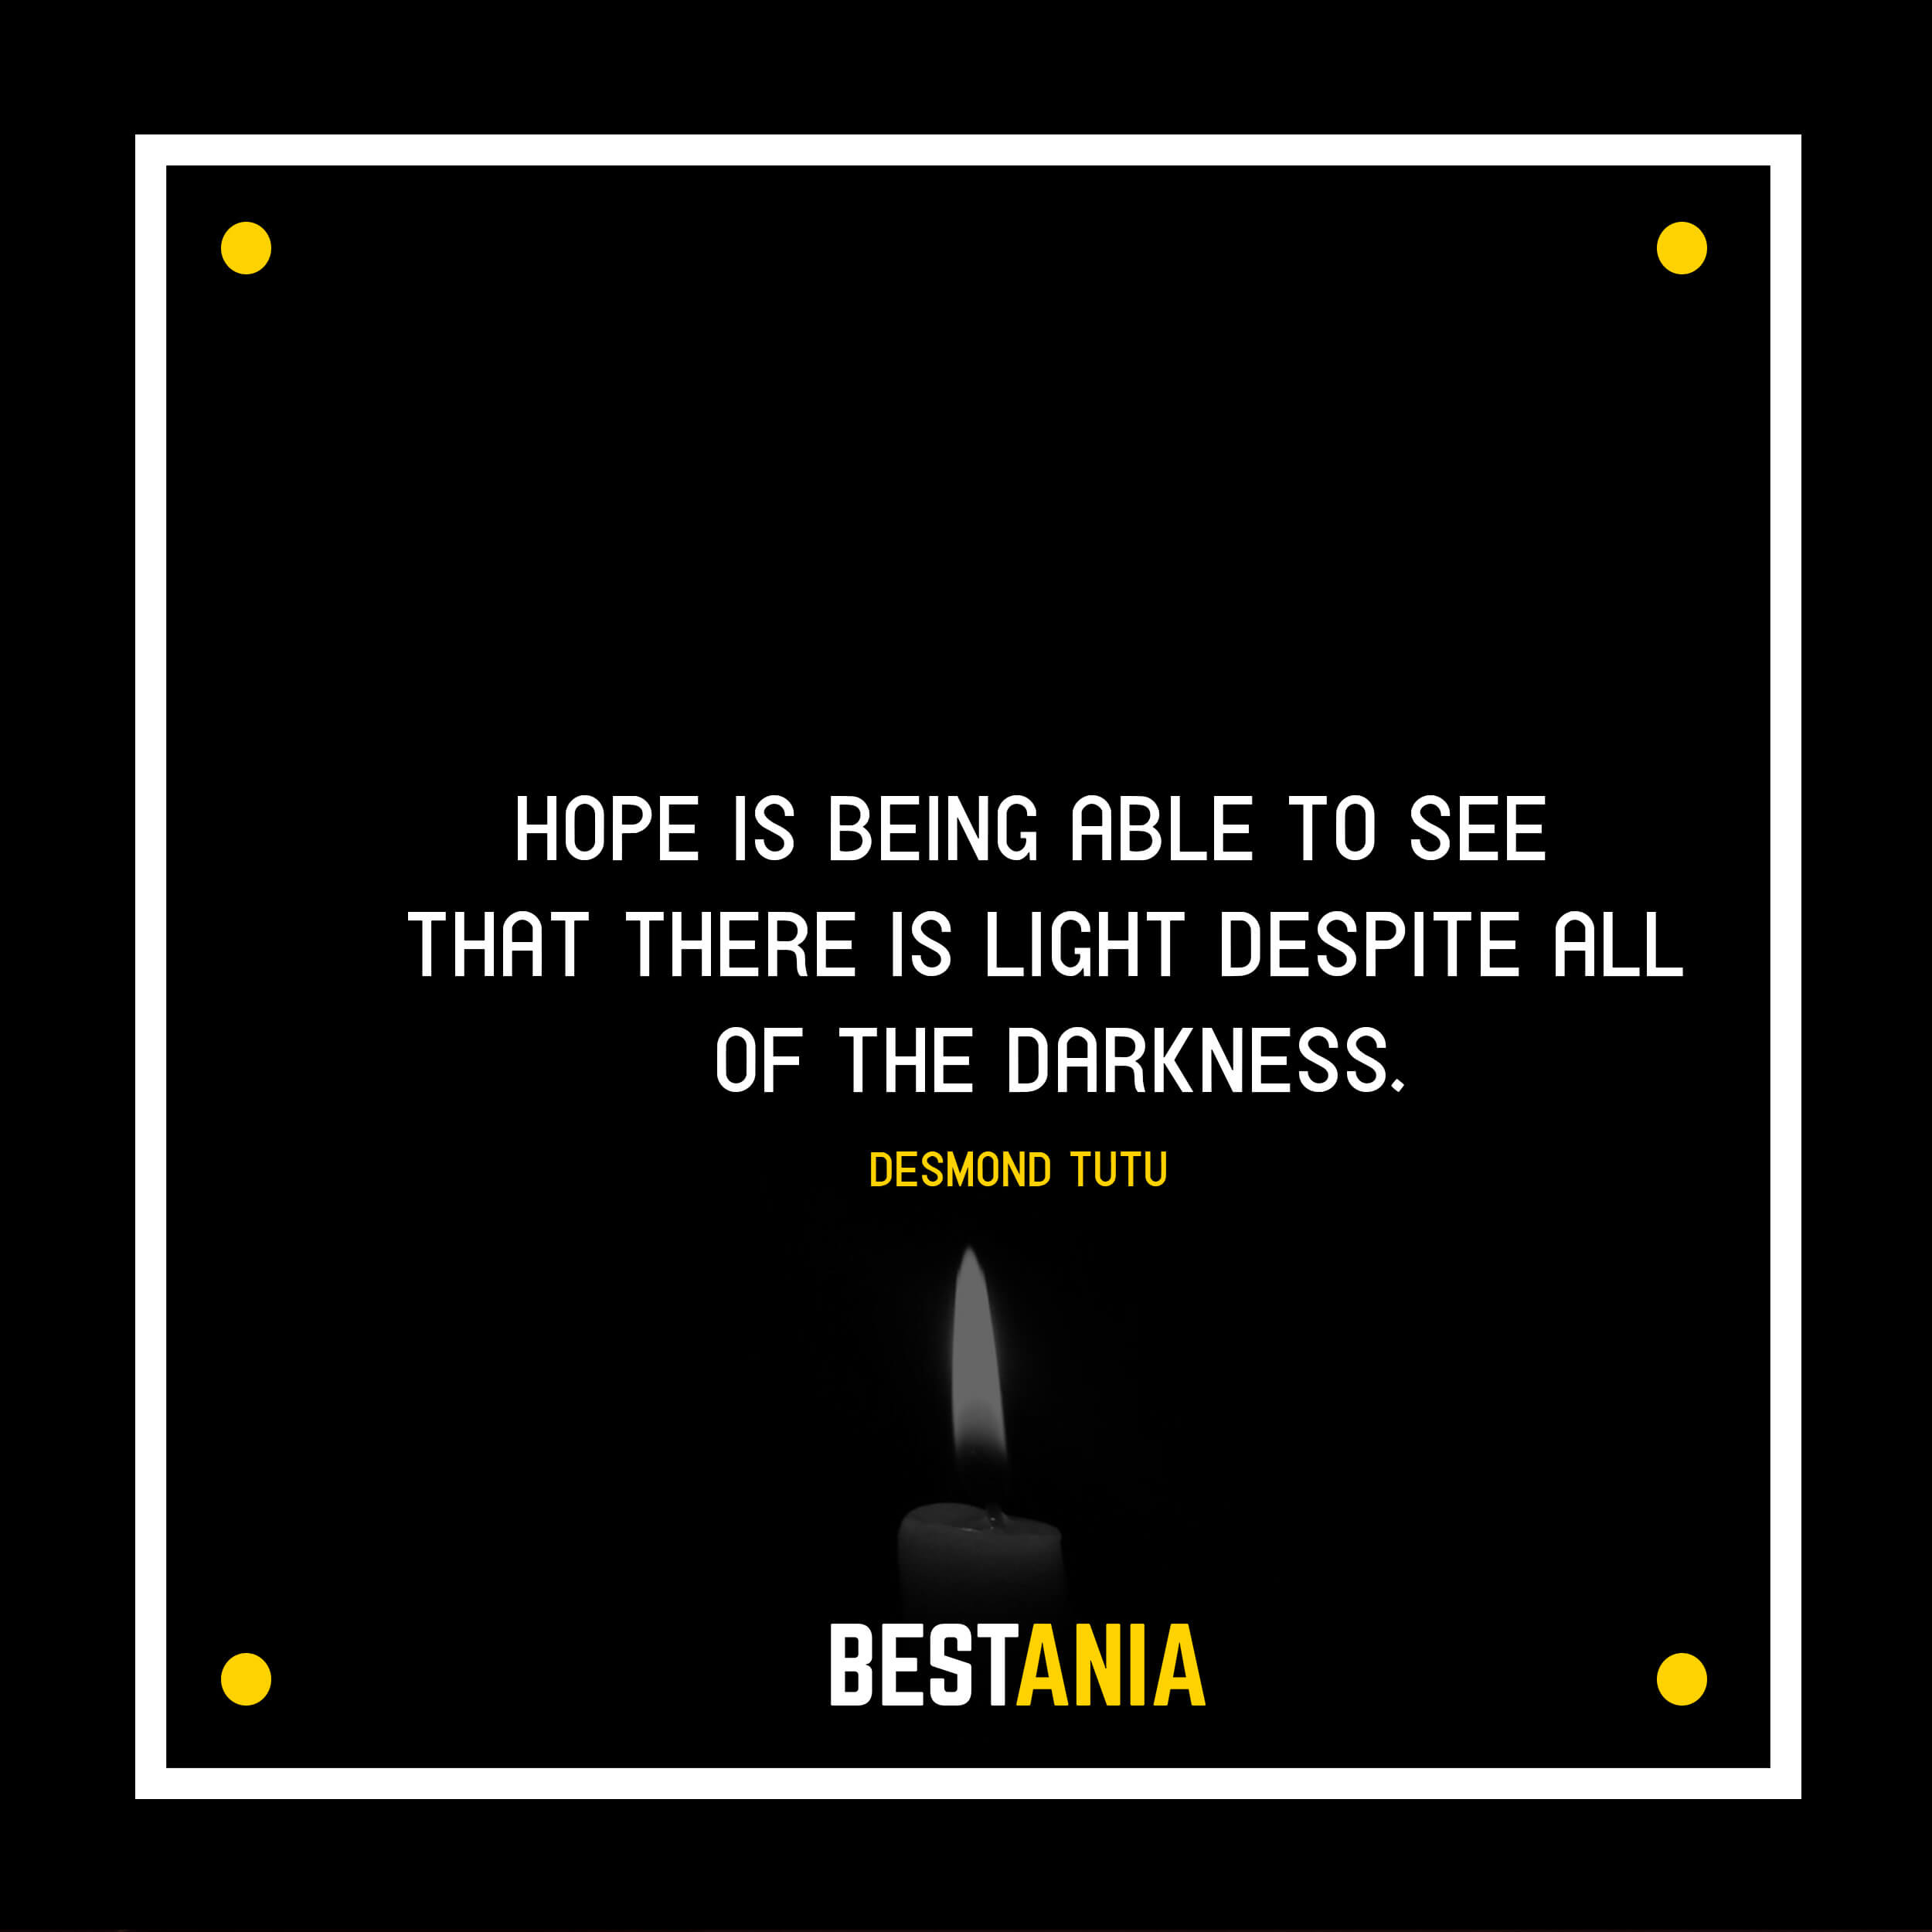 """""""HOPE IS BEING ABLE TO SEE THAT THERE IS LIGHT DESPITE ALL OF THE DARKNESS."""" DESMOND TUTU"""